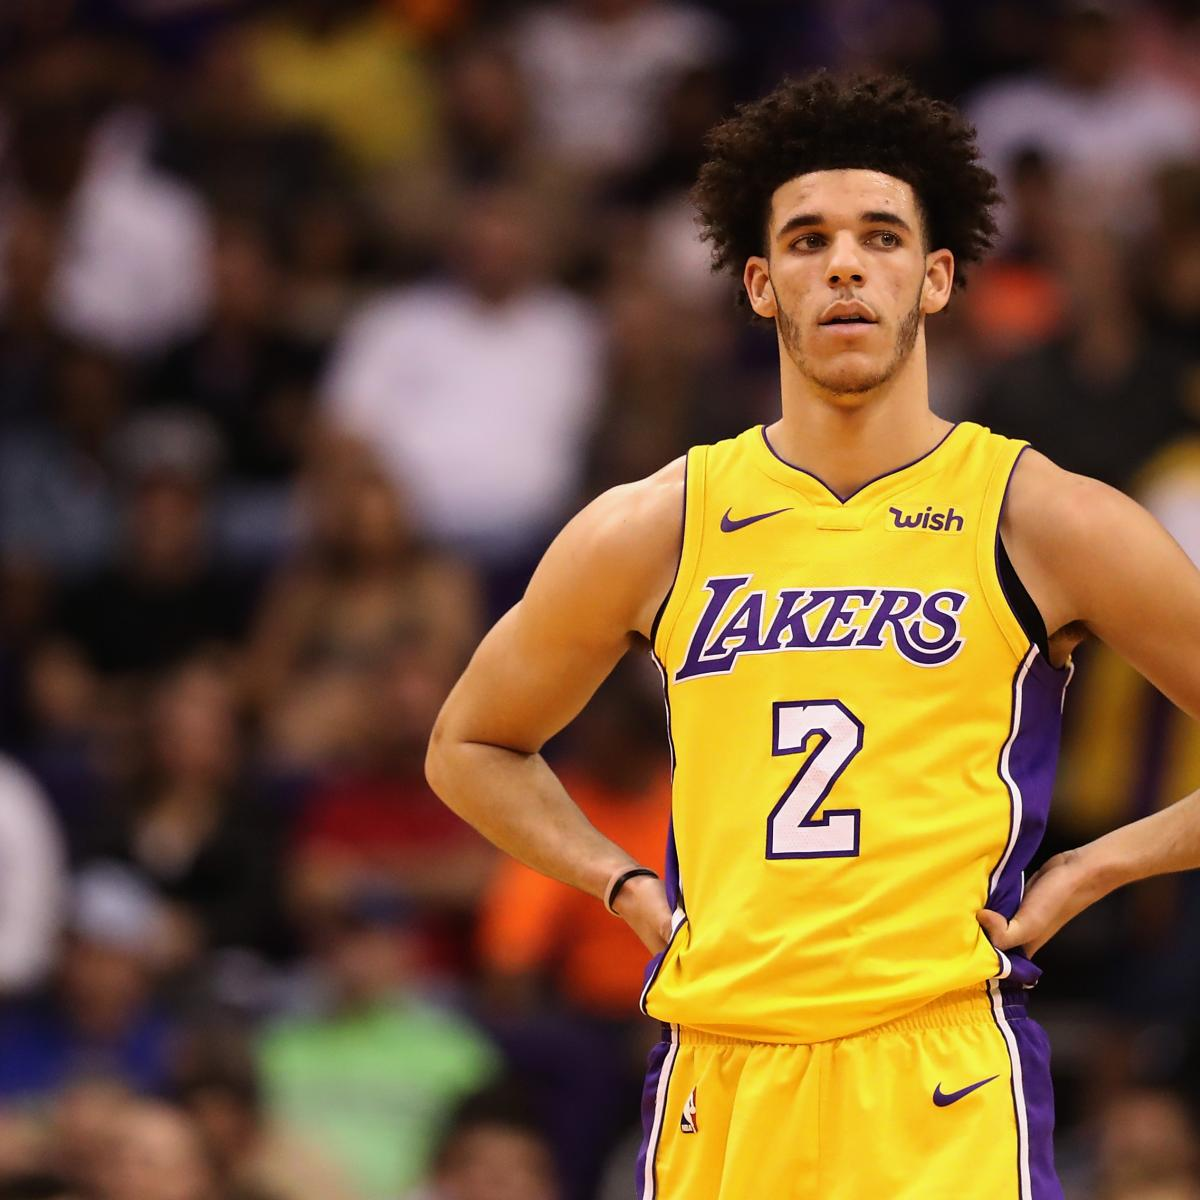 Colorado Shooting R H Youtube Com: Lonzo Ball Scores 7 Points On 3-of-10 Shooting In Lakers